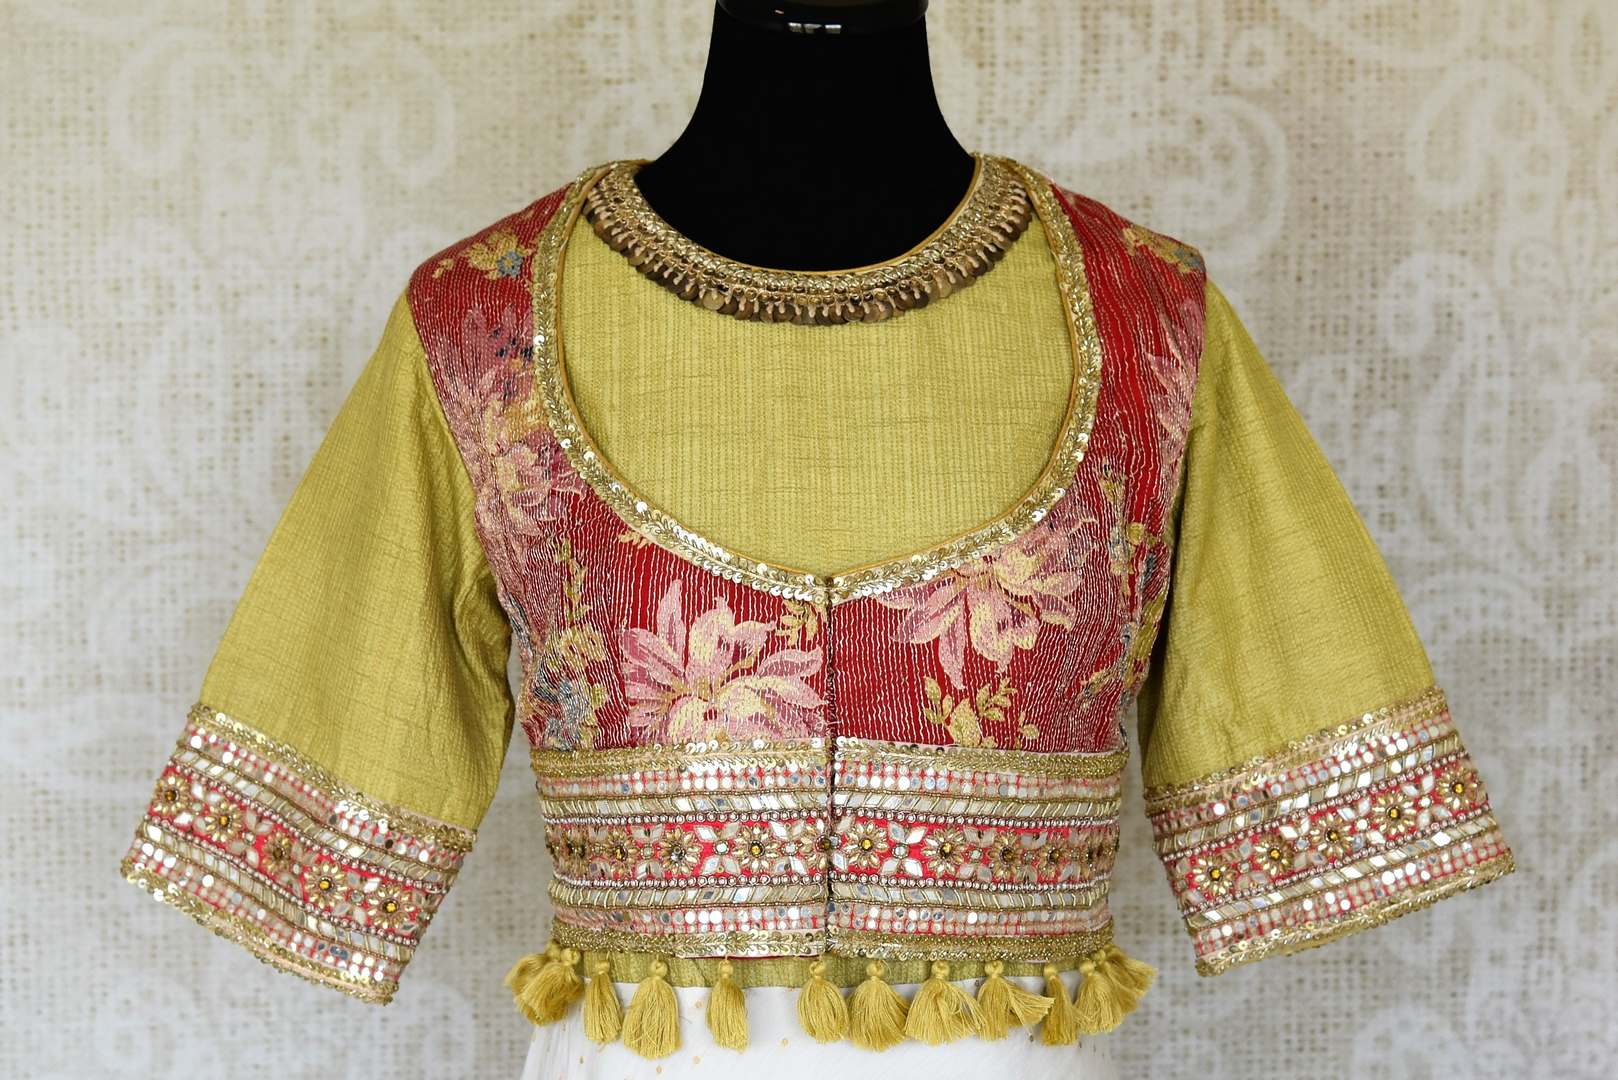 Shop white and green hand embroidery silk Anarkali dress online in USA. Raise your ethnic style quotient at special occasions with exquisite Indian clothing from Pure Elegance Indian clothing store in USA. Pick from a tasteful collection of designer lehengas, Anarkali suits, Indian dresses. Shop now.-front